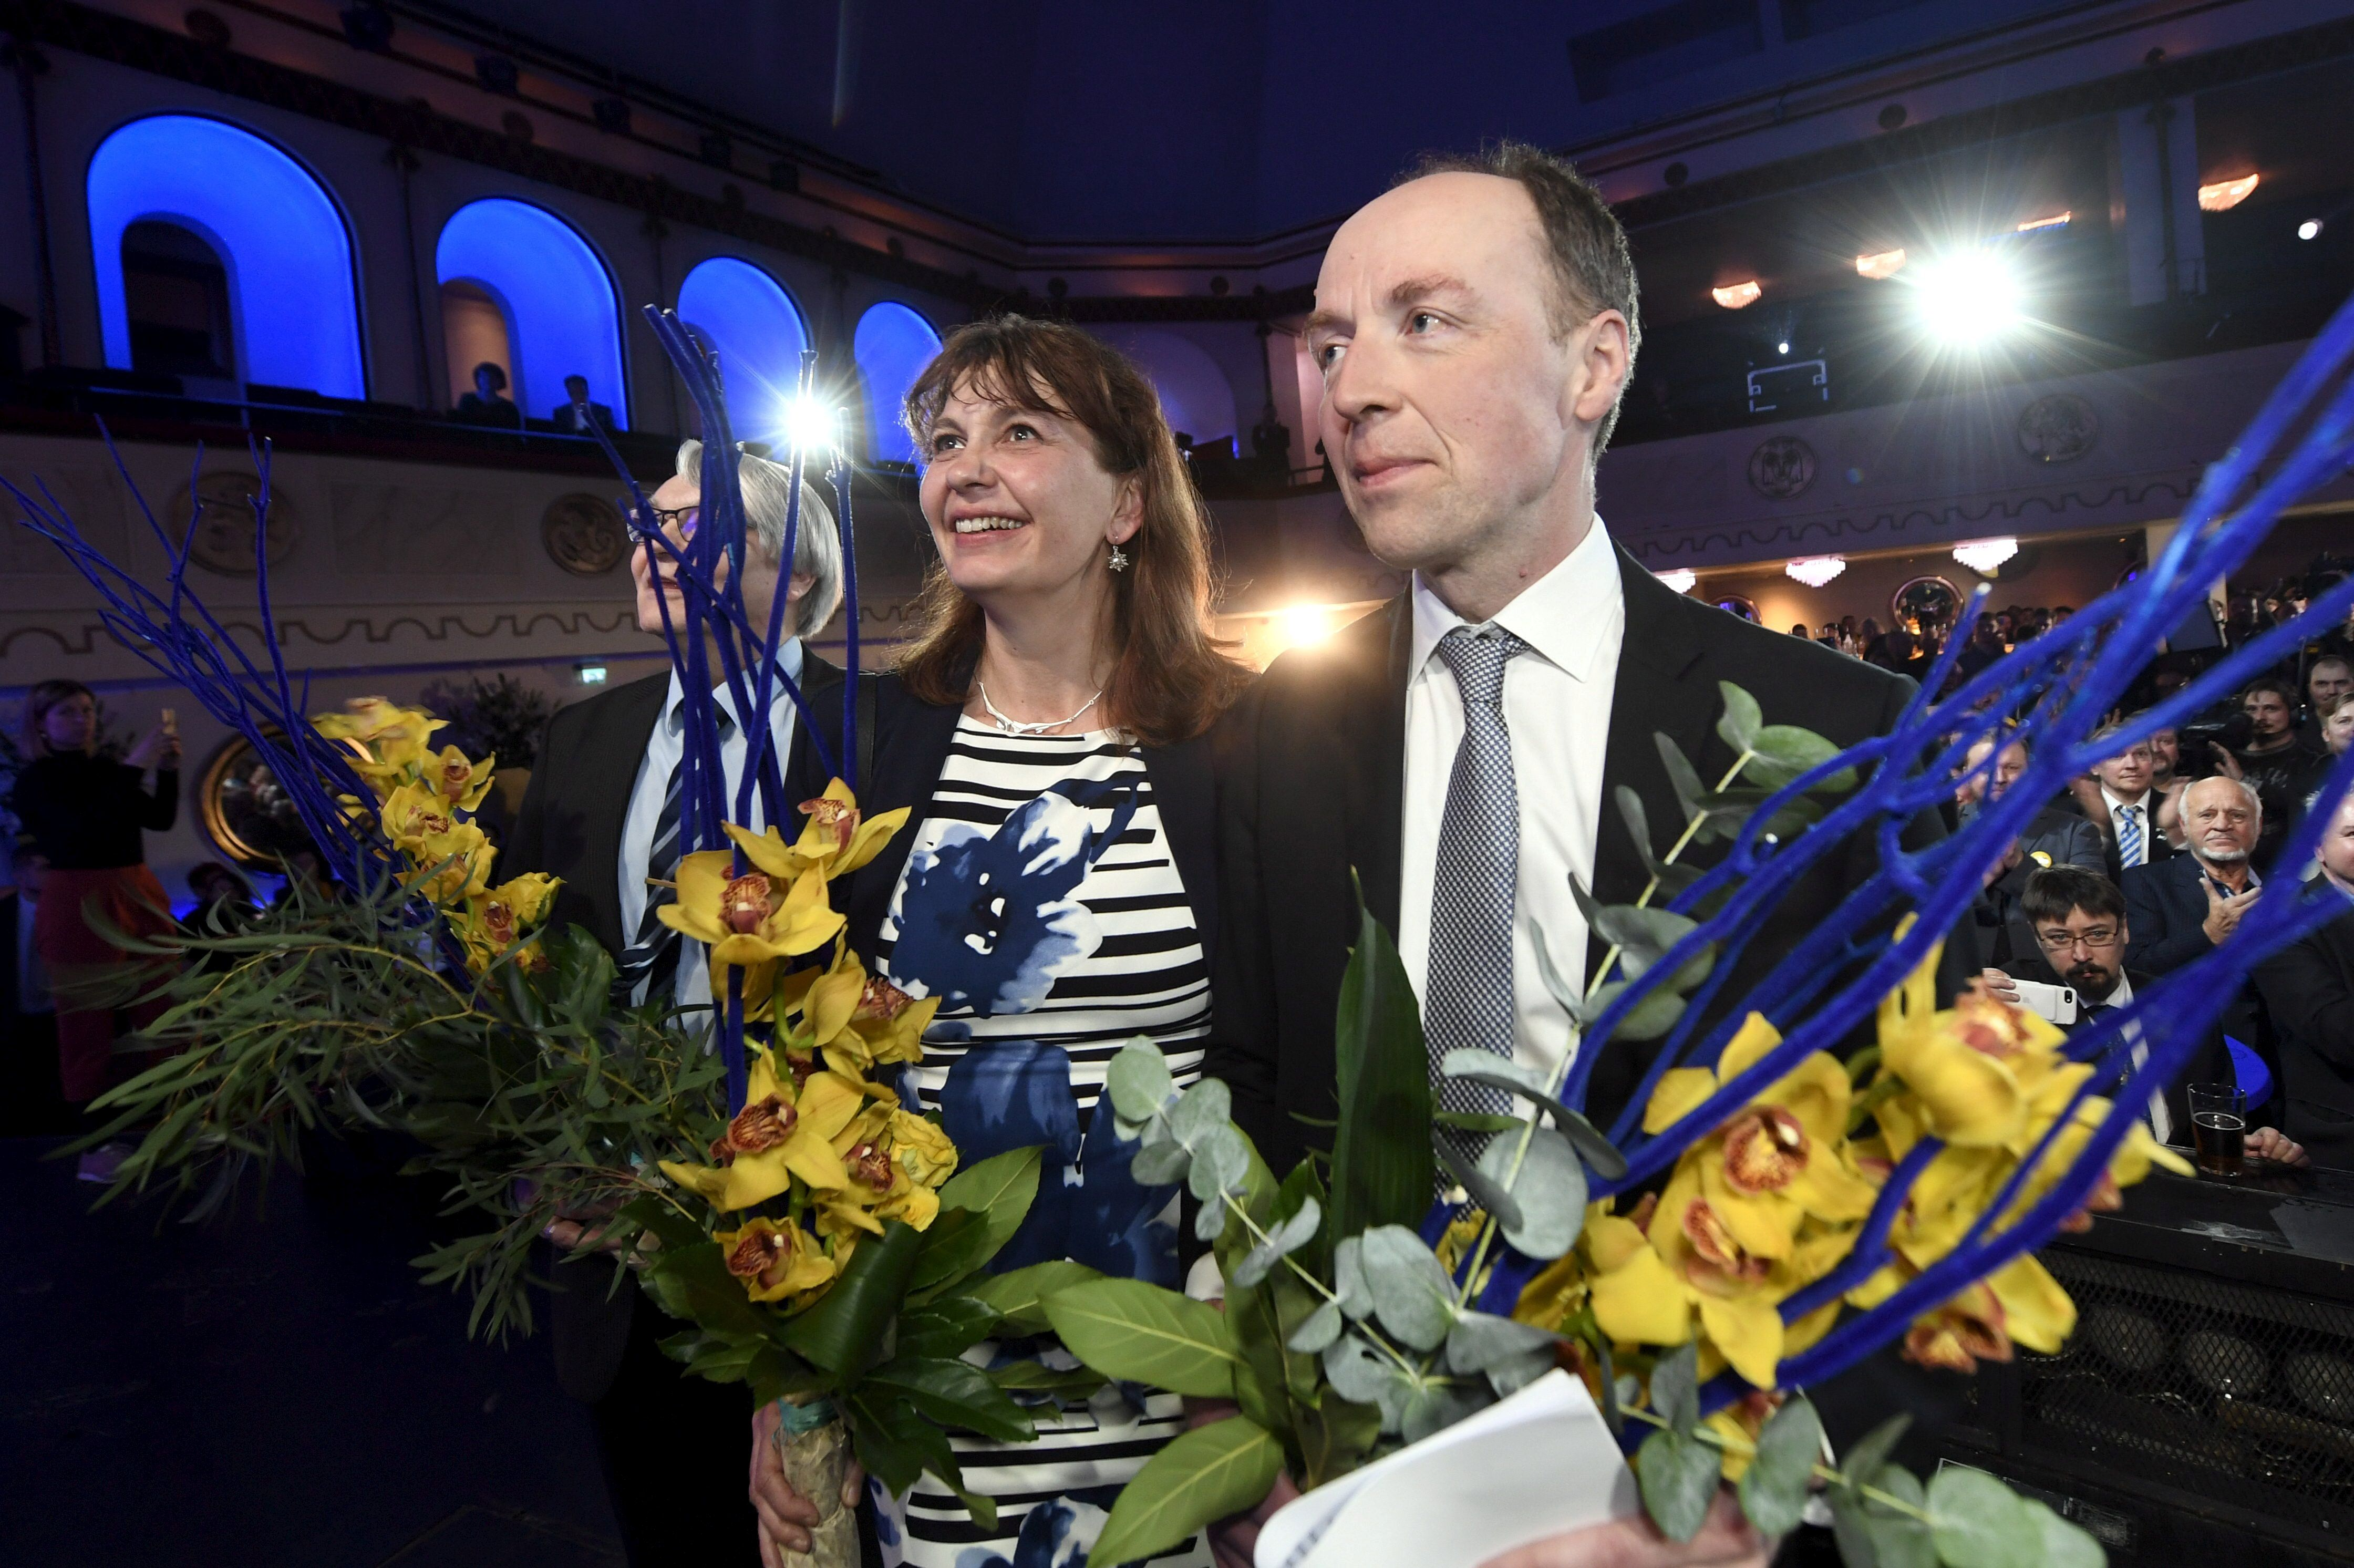 Finland: New Target for European Populists?